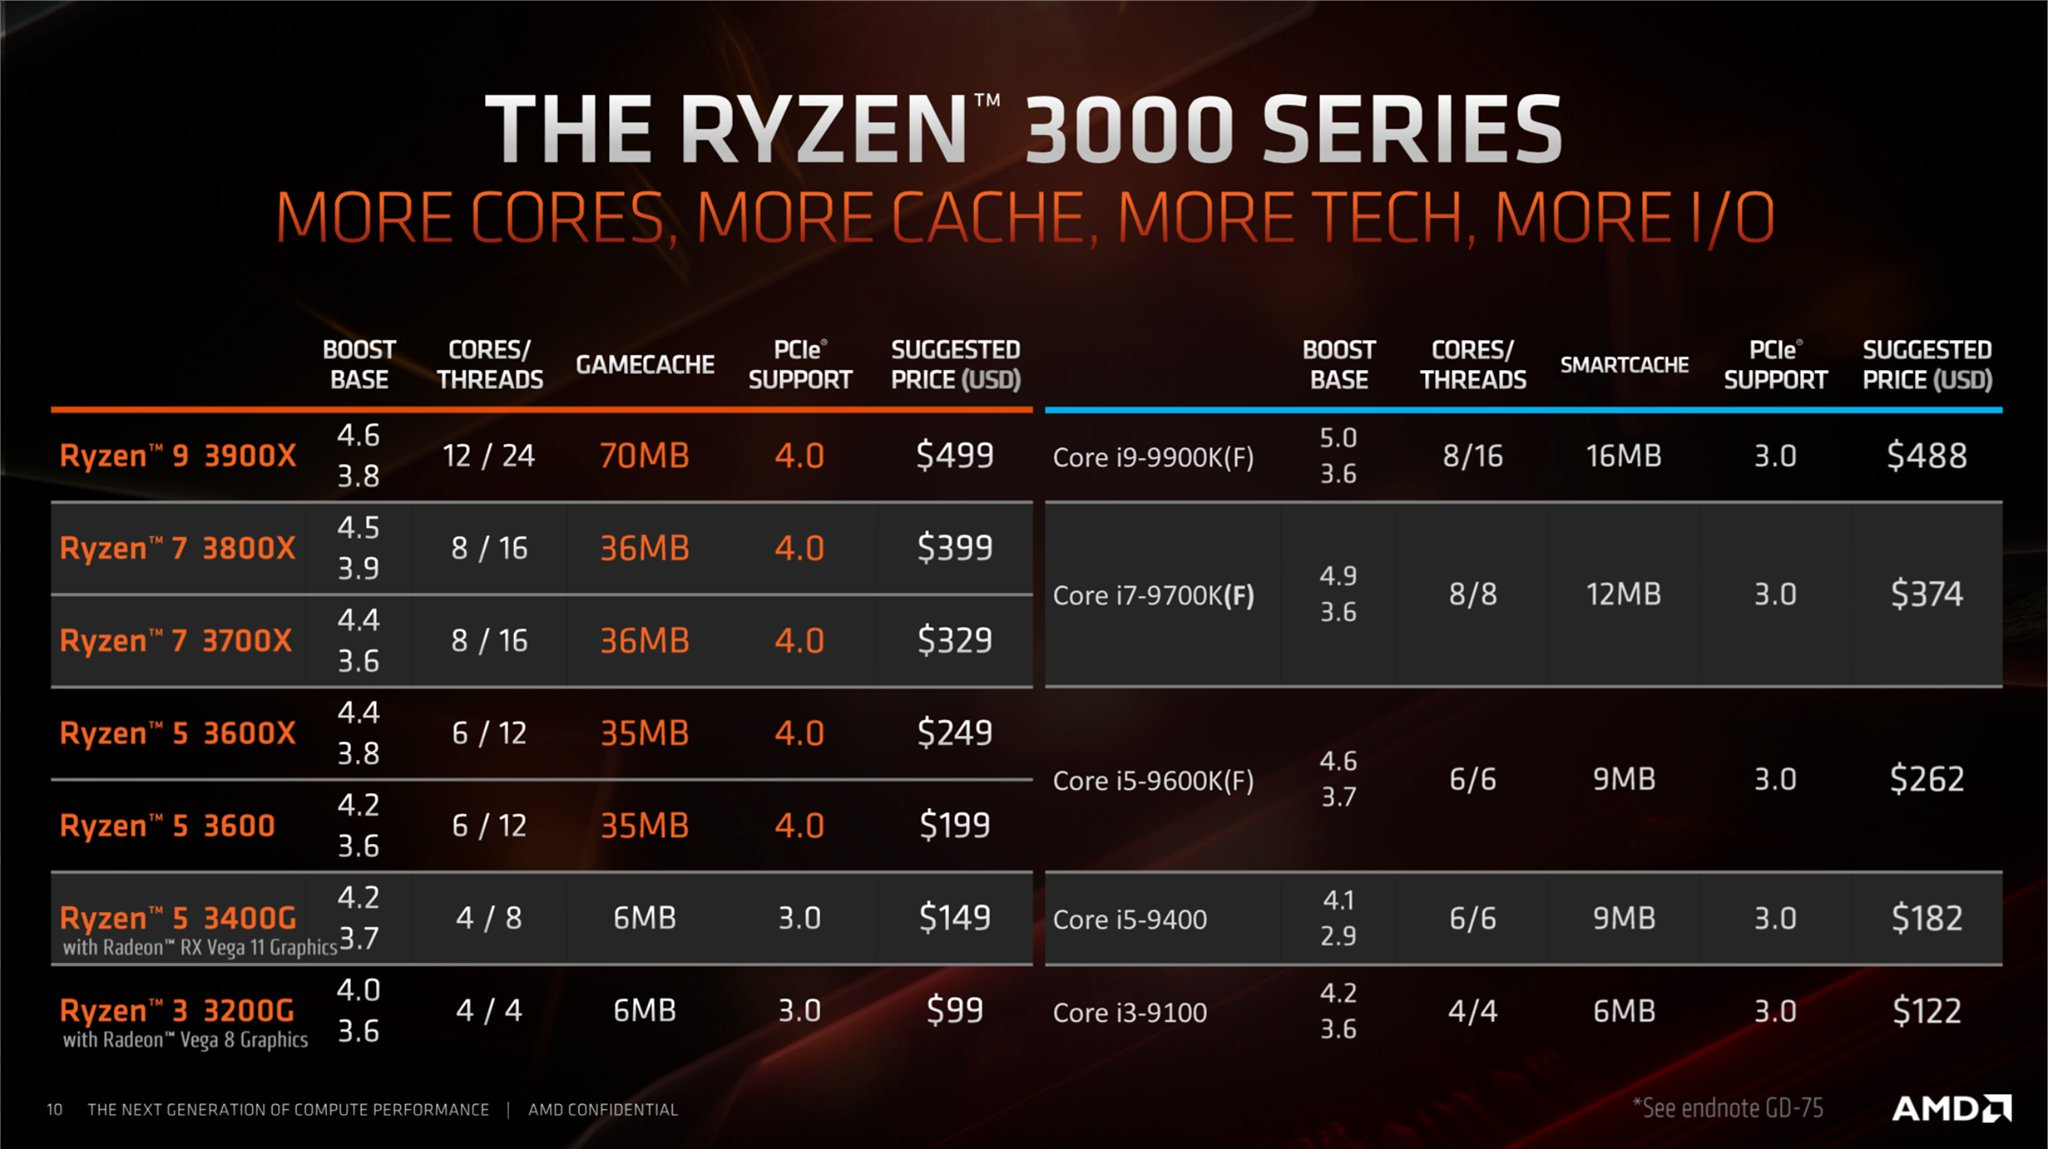 AMD Launches 7nm Ryzen 3000 CPUs & Radeon RX 5700 GPUs